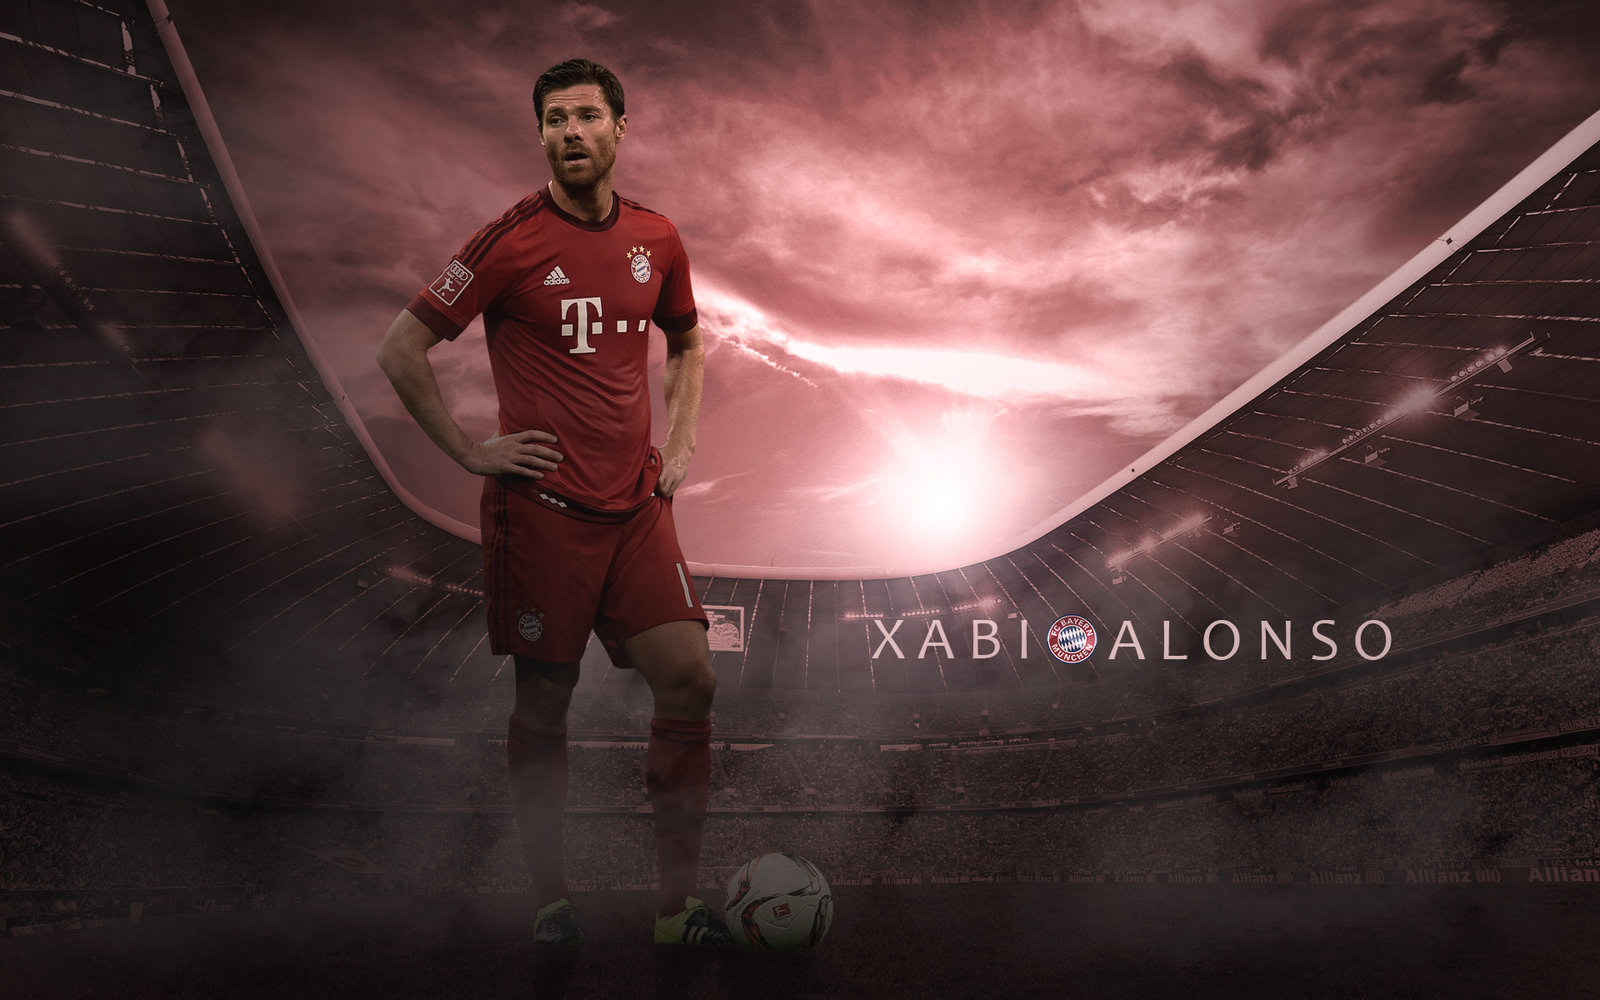 1600x1000 - Xabi Alonso Wallpapers 3